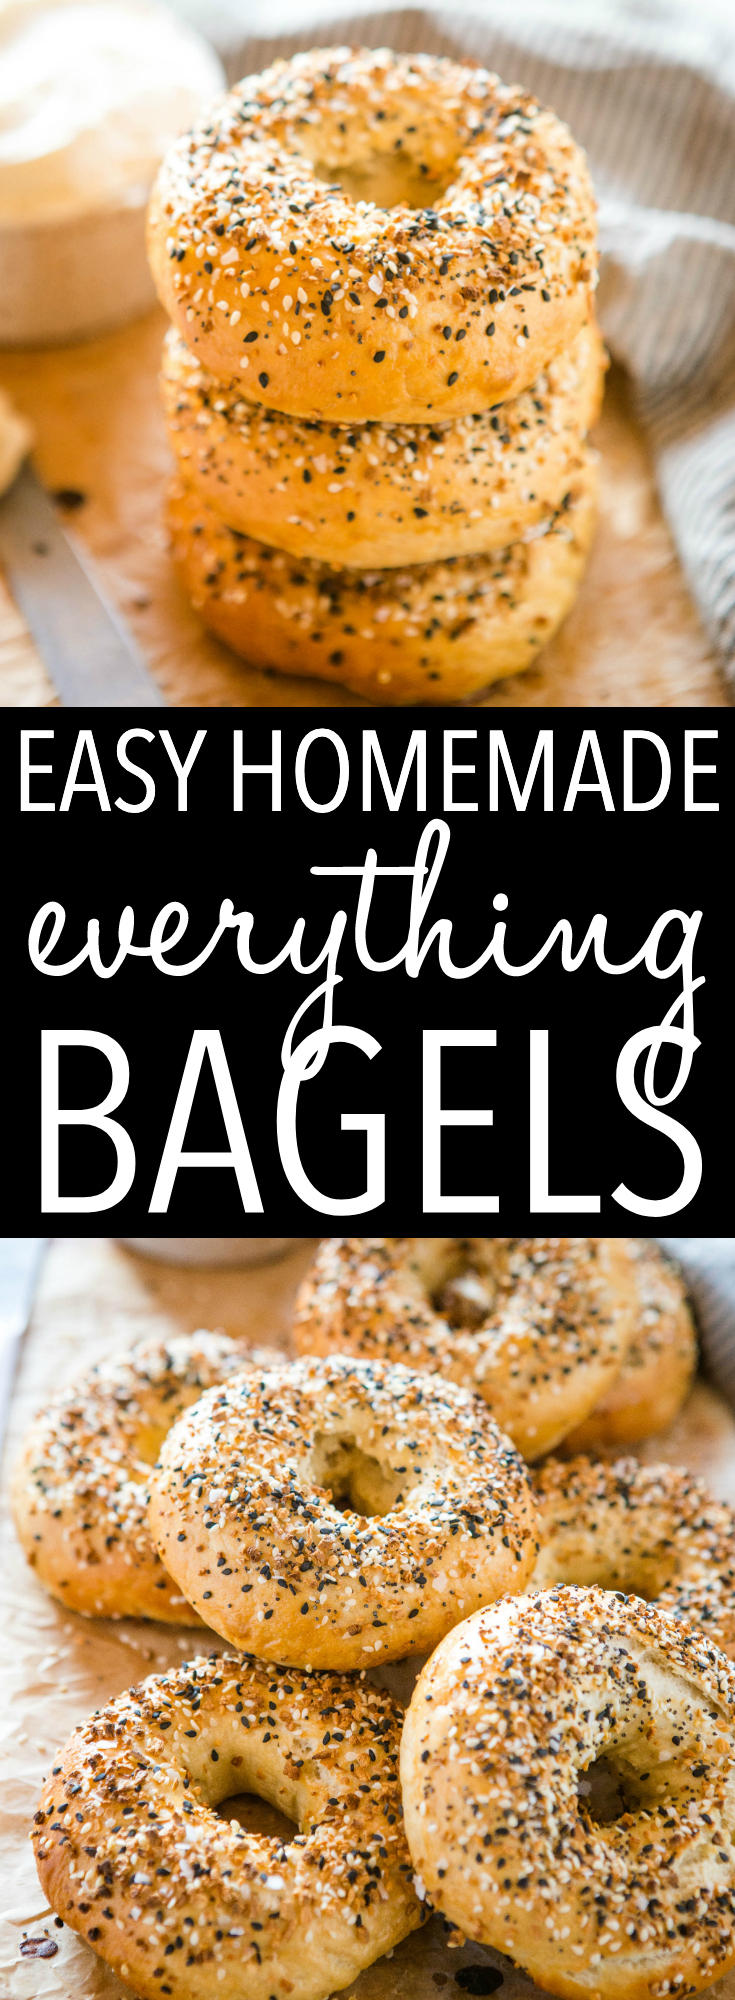 These Easy Homemade Everything Bagels are perfectly dense & chewy, and topped with Everything Bagel Seasoning. And they're SO easy to make with no special equipment or ingredients! Recipe from thebusybaker.ca! #bagels #homemade #everythingbagels #bagelrecipe #baking #creamcheese #easyrecipe #howtomakebagels via @busybakerblog